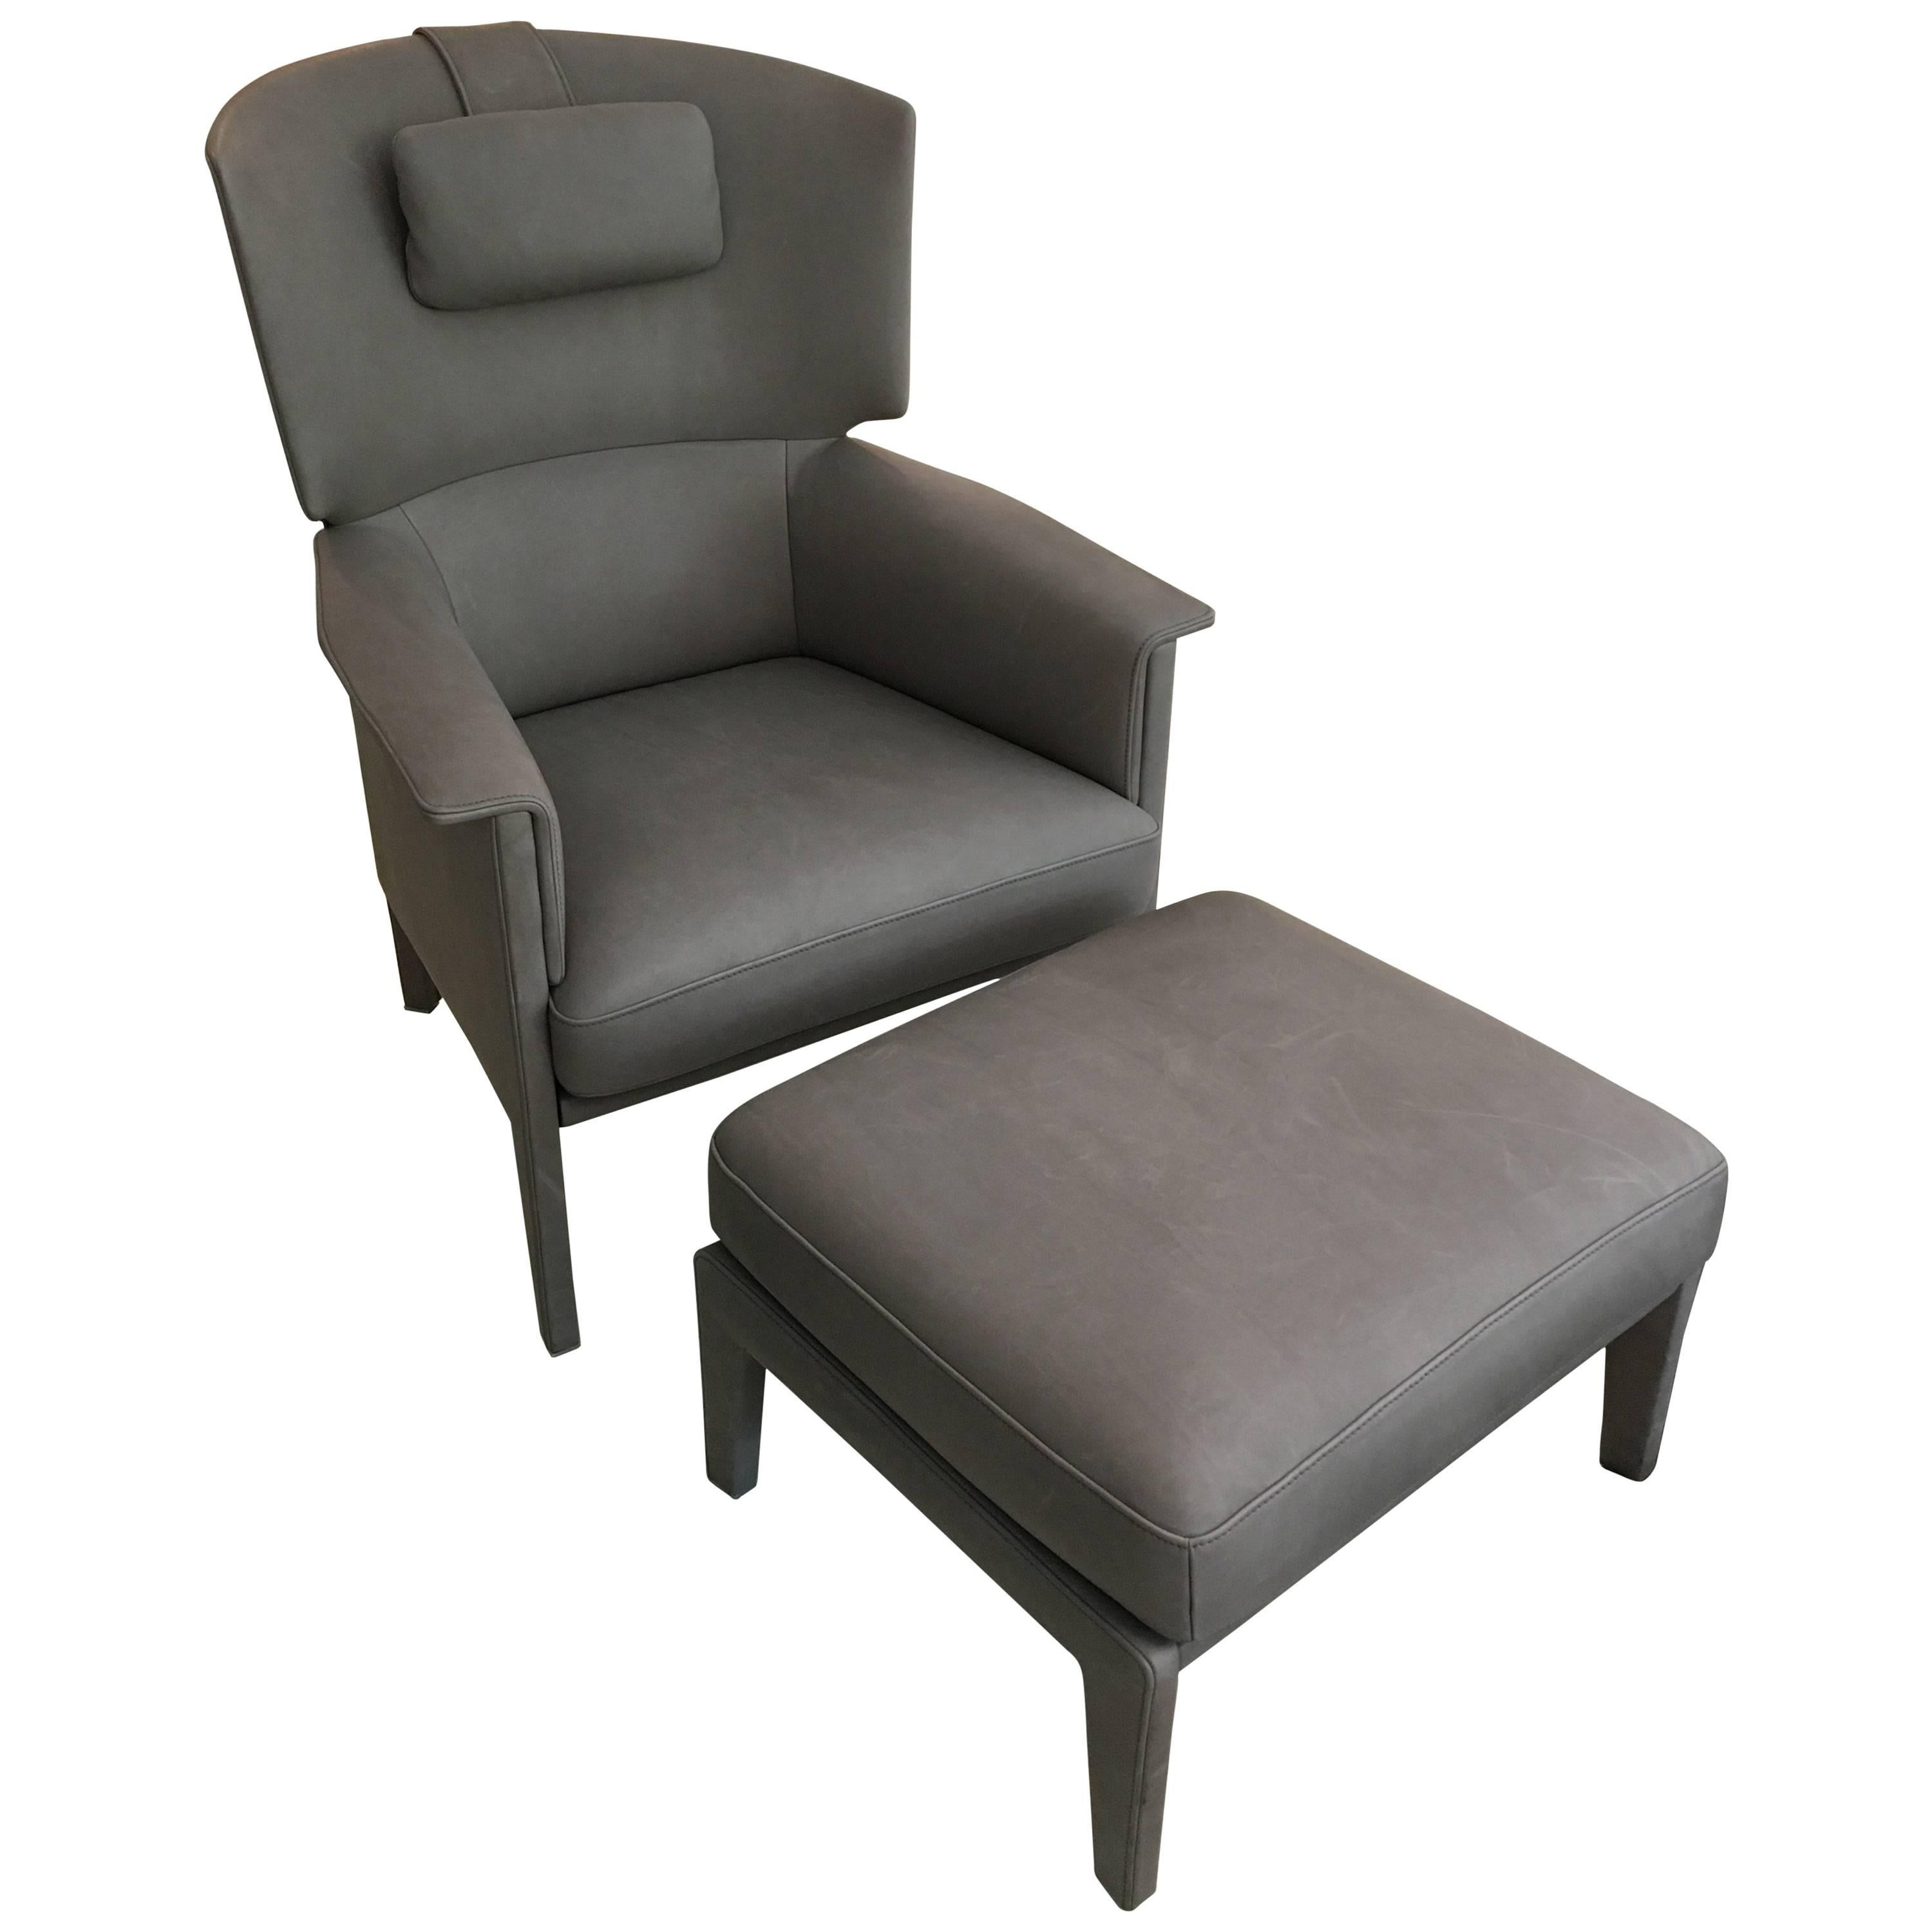 DS 168 Light Grey Leather Wingback Armchair And Ottoman By De Sede For Sale